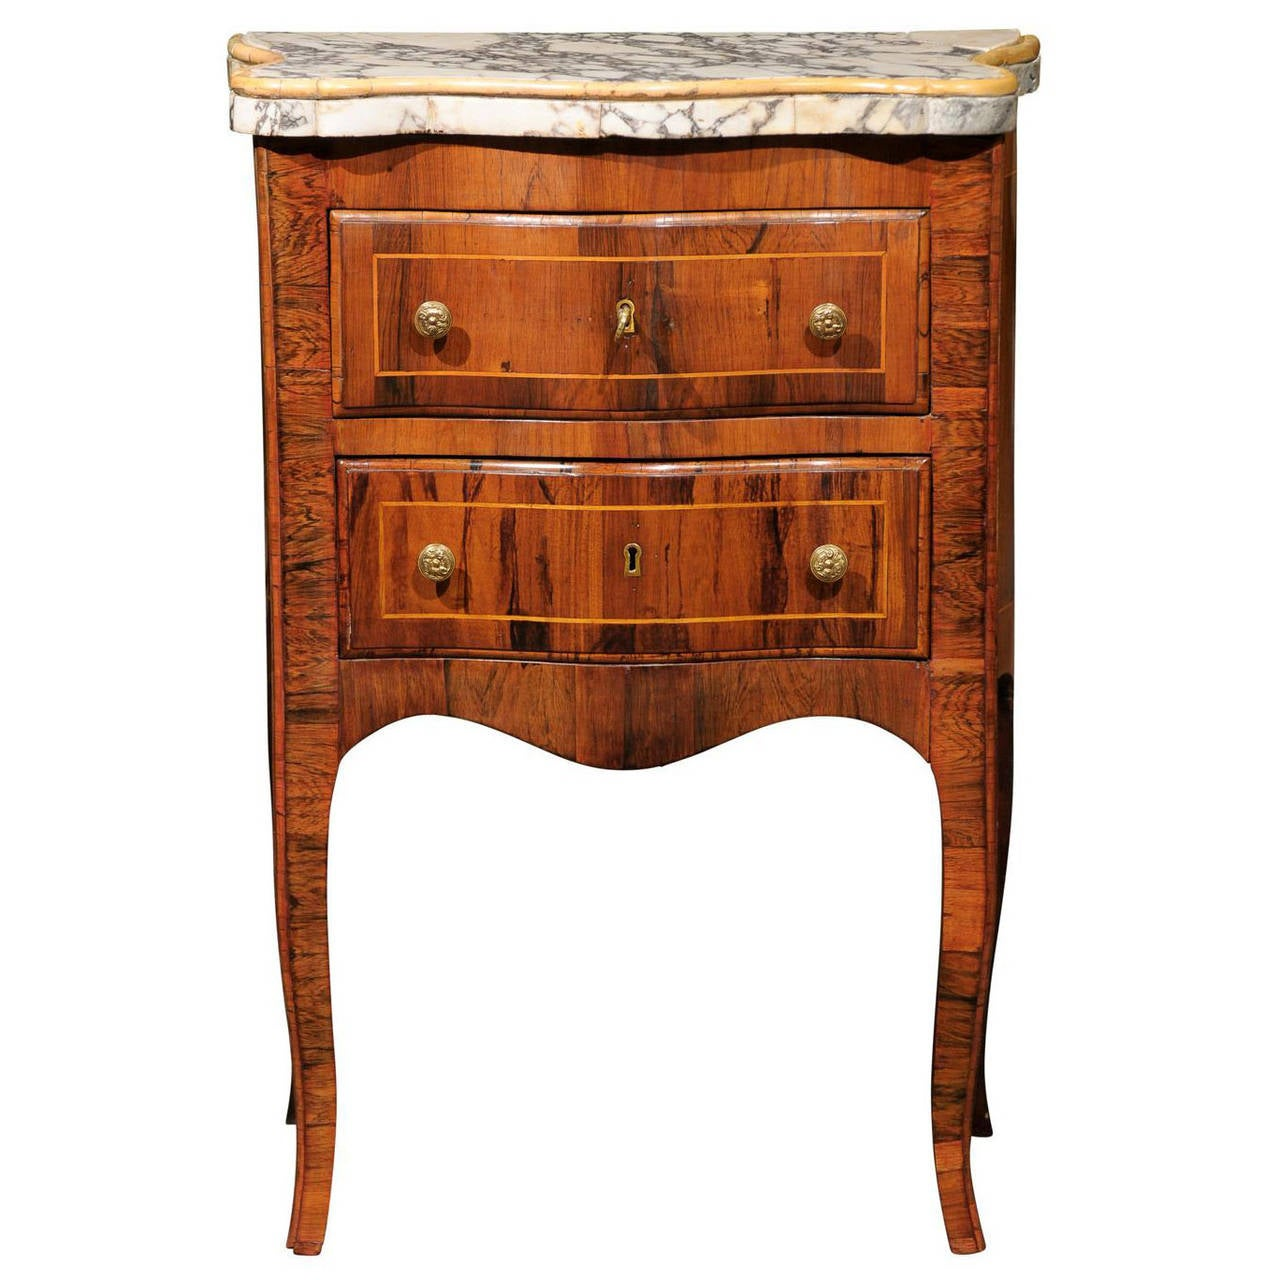 petite italian serpentine commode in rosewood with inlaid. Black Bedroom Furniture Sets. Home Design Ideas